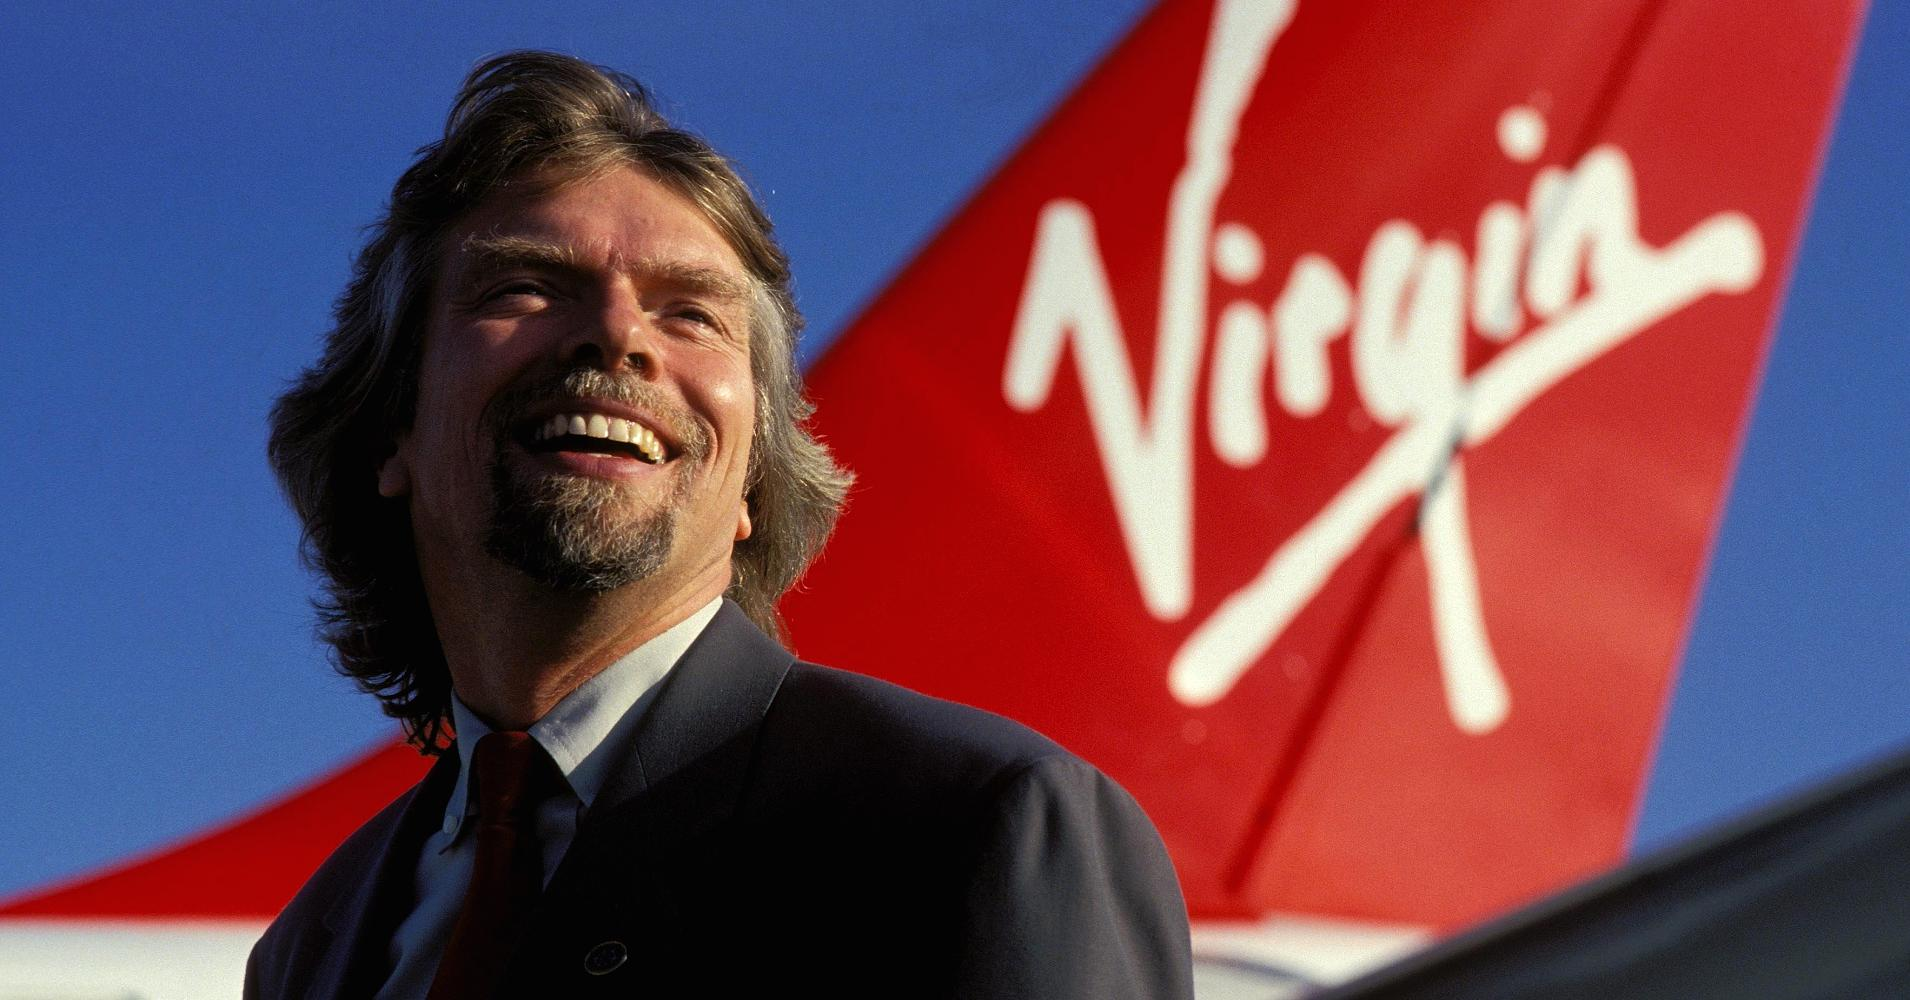 when richard branson s airline won 945 000 from a lawsuit he gave